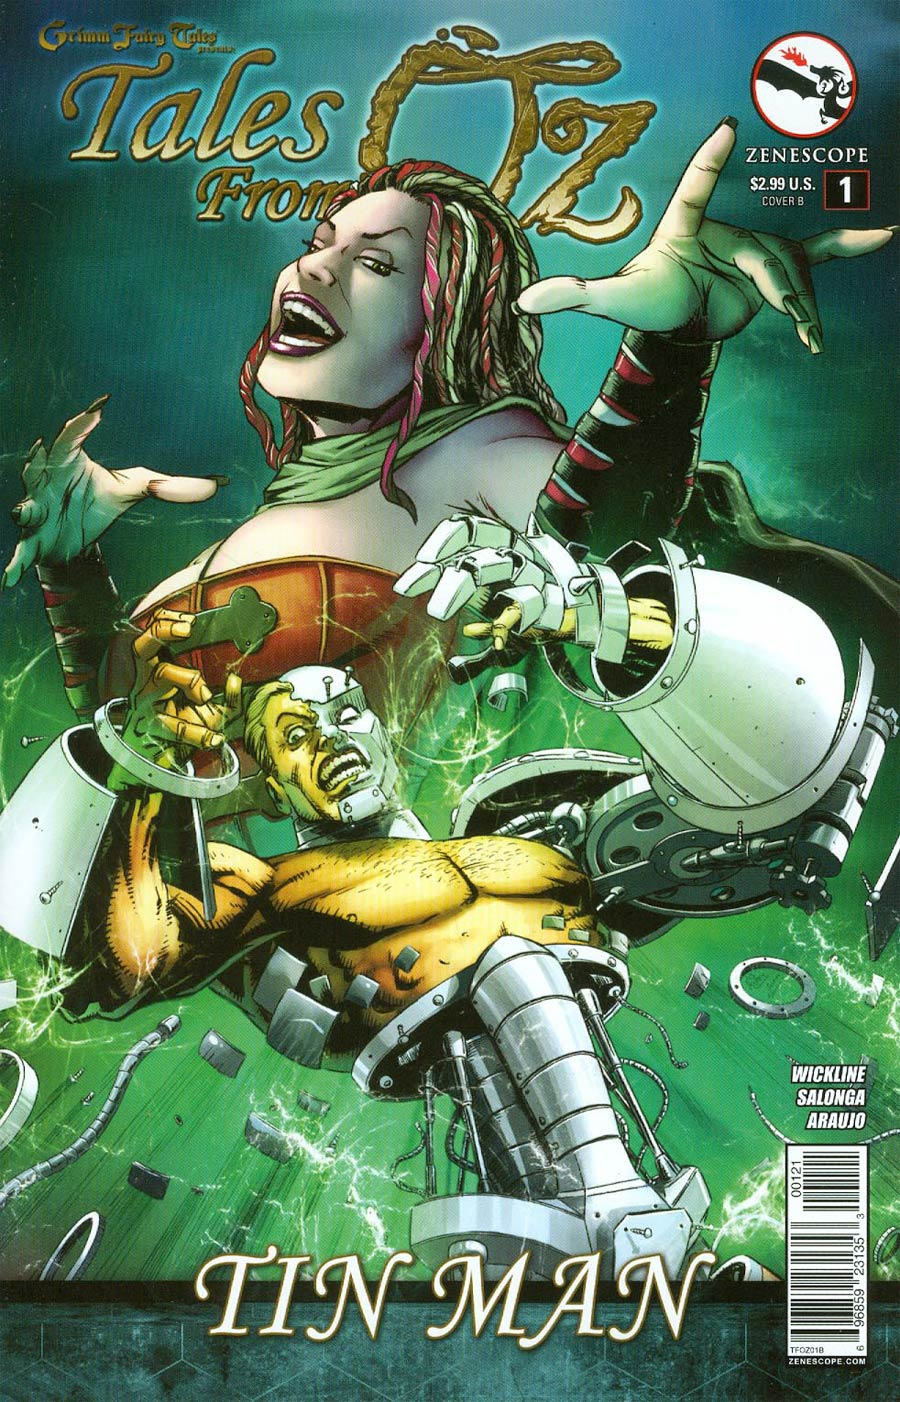 Grimm Fairy Tales Presents Tales From Oz #1 Tin Man Cover B Anthony Spay